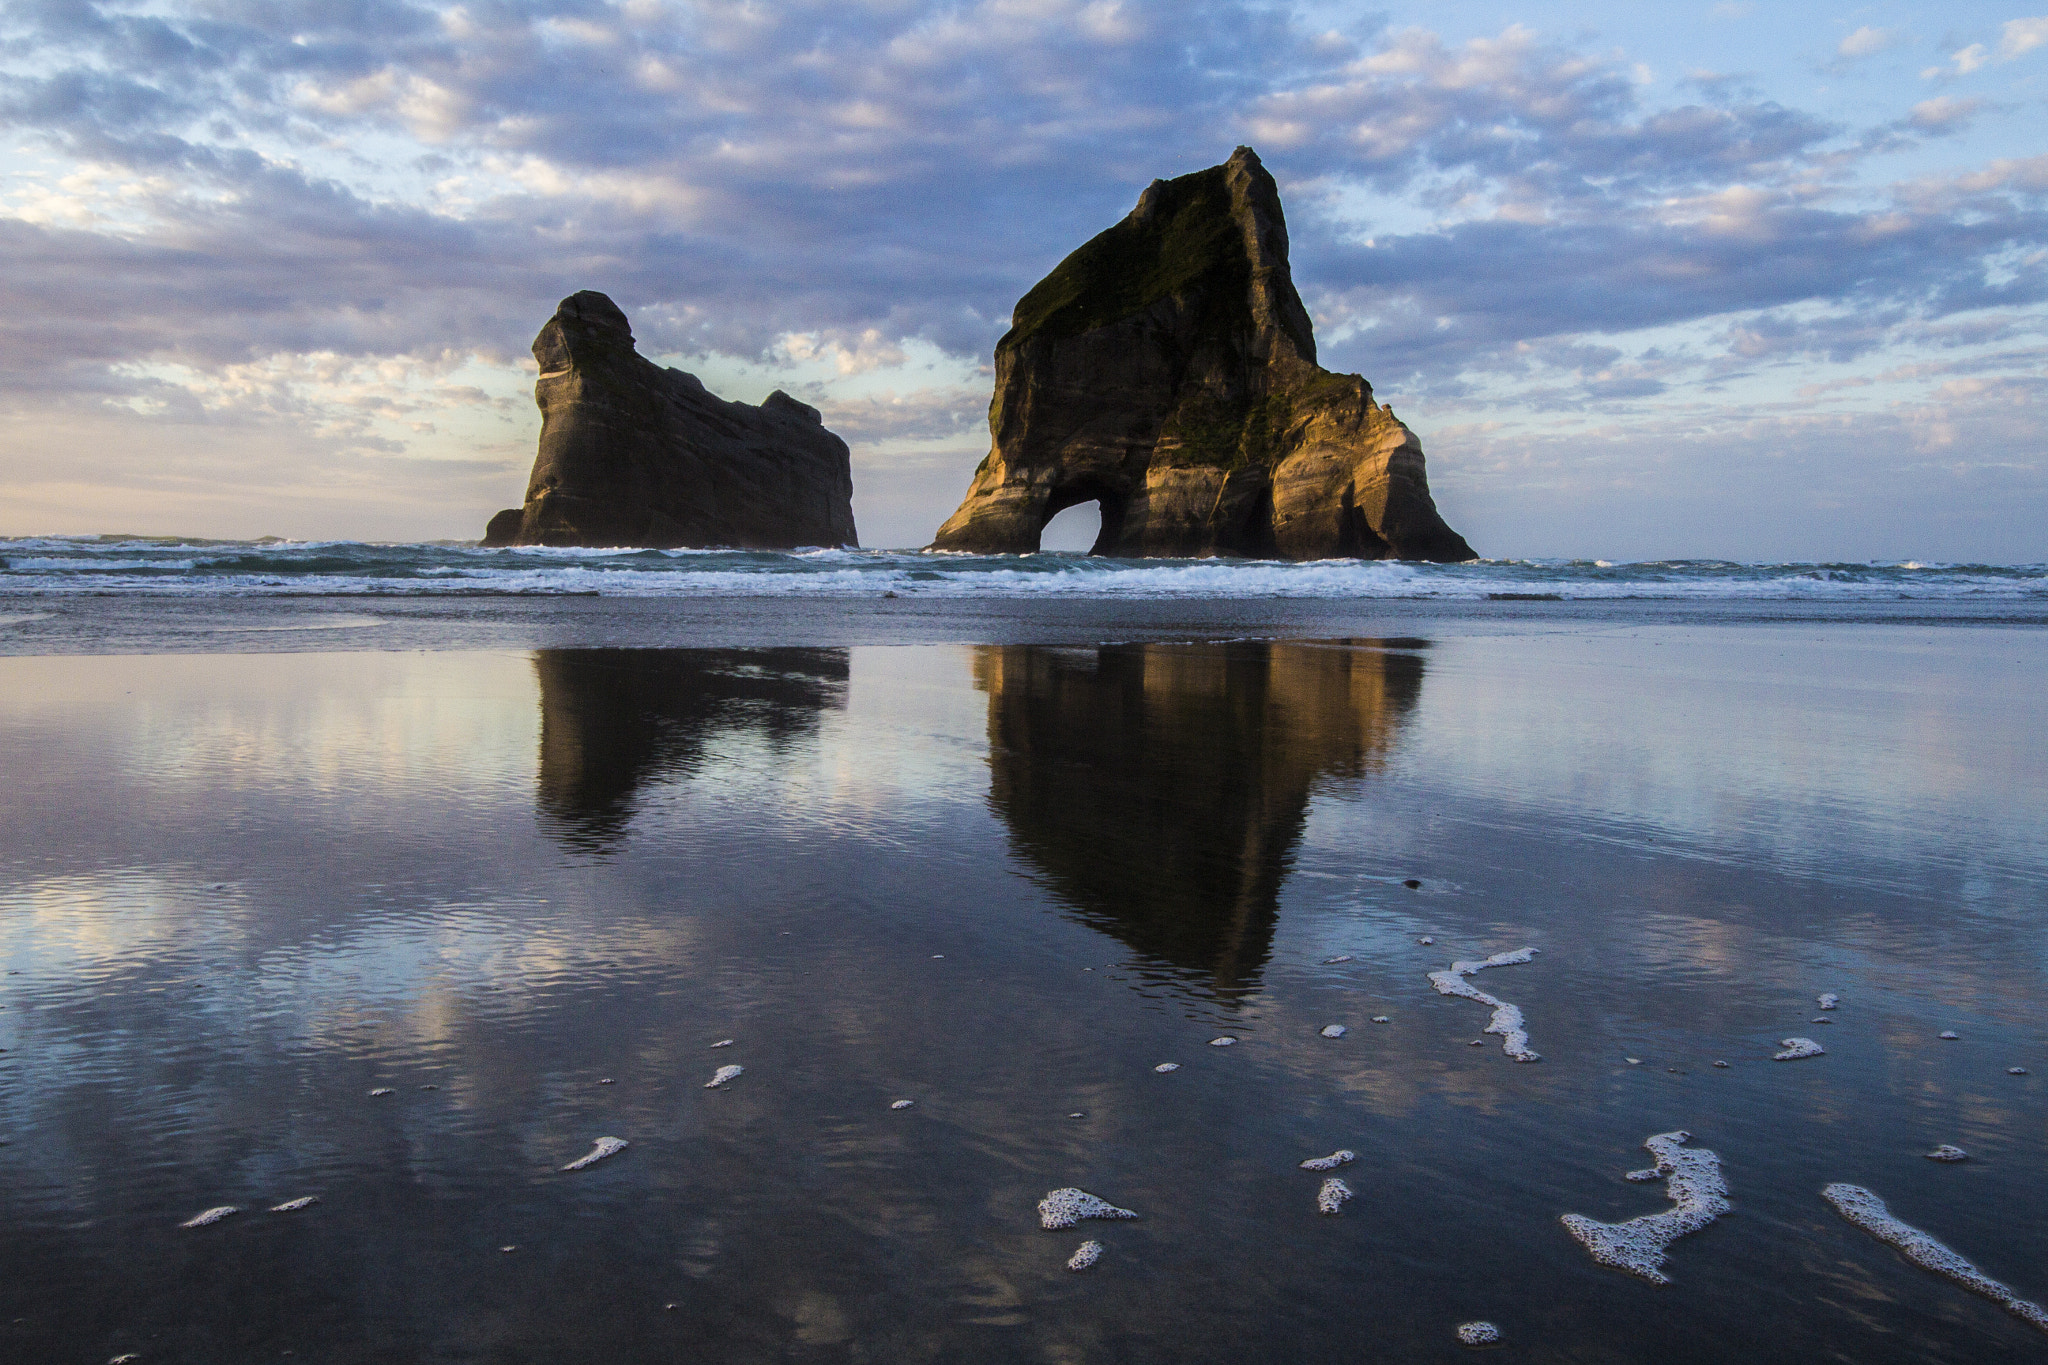 Photograph Wharariki Beach Archway Islands by Adam Crins on 500px